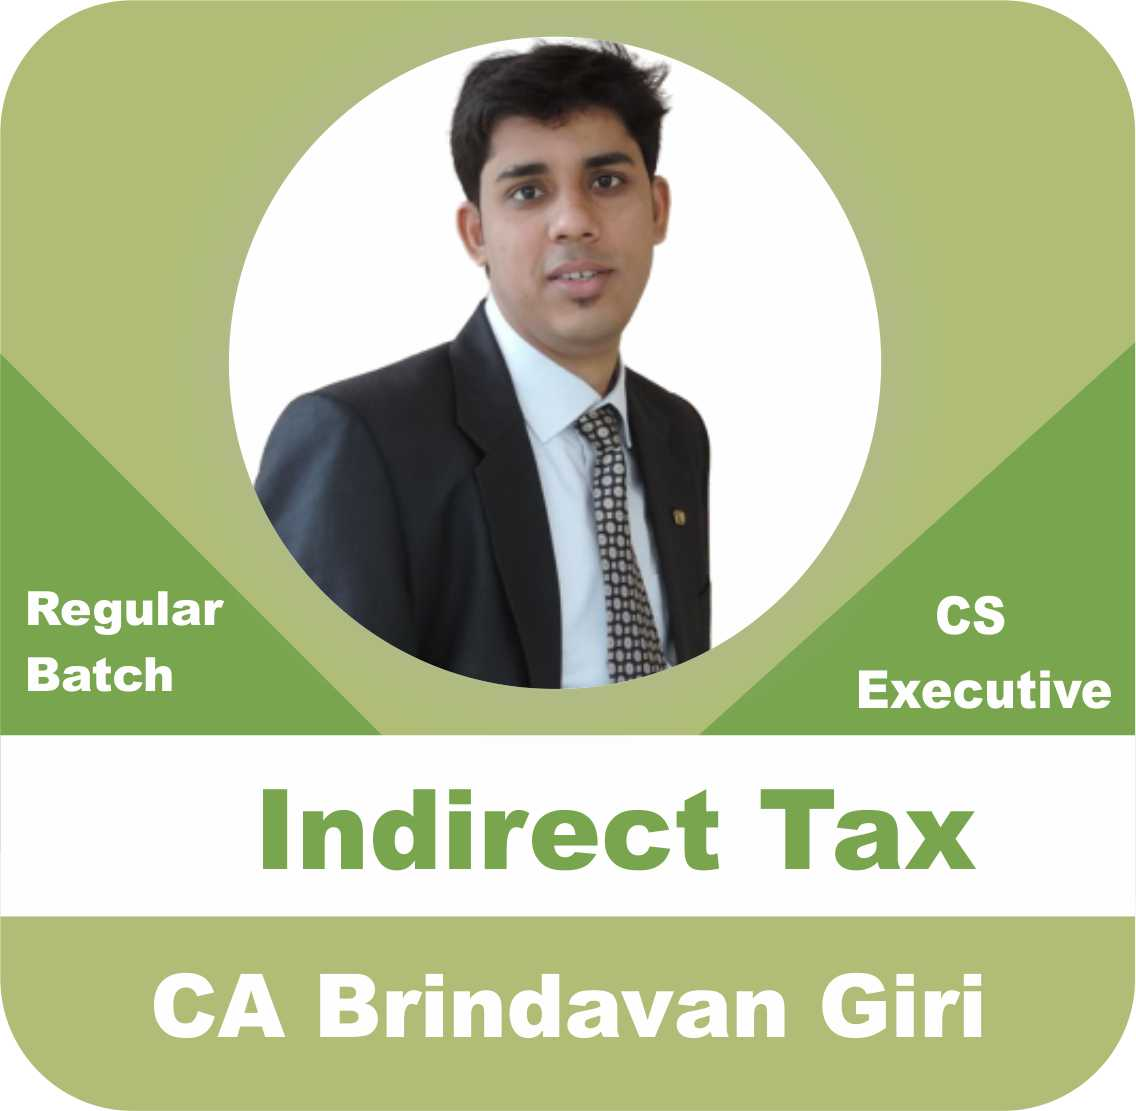 Indirect Tax Regular Batch